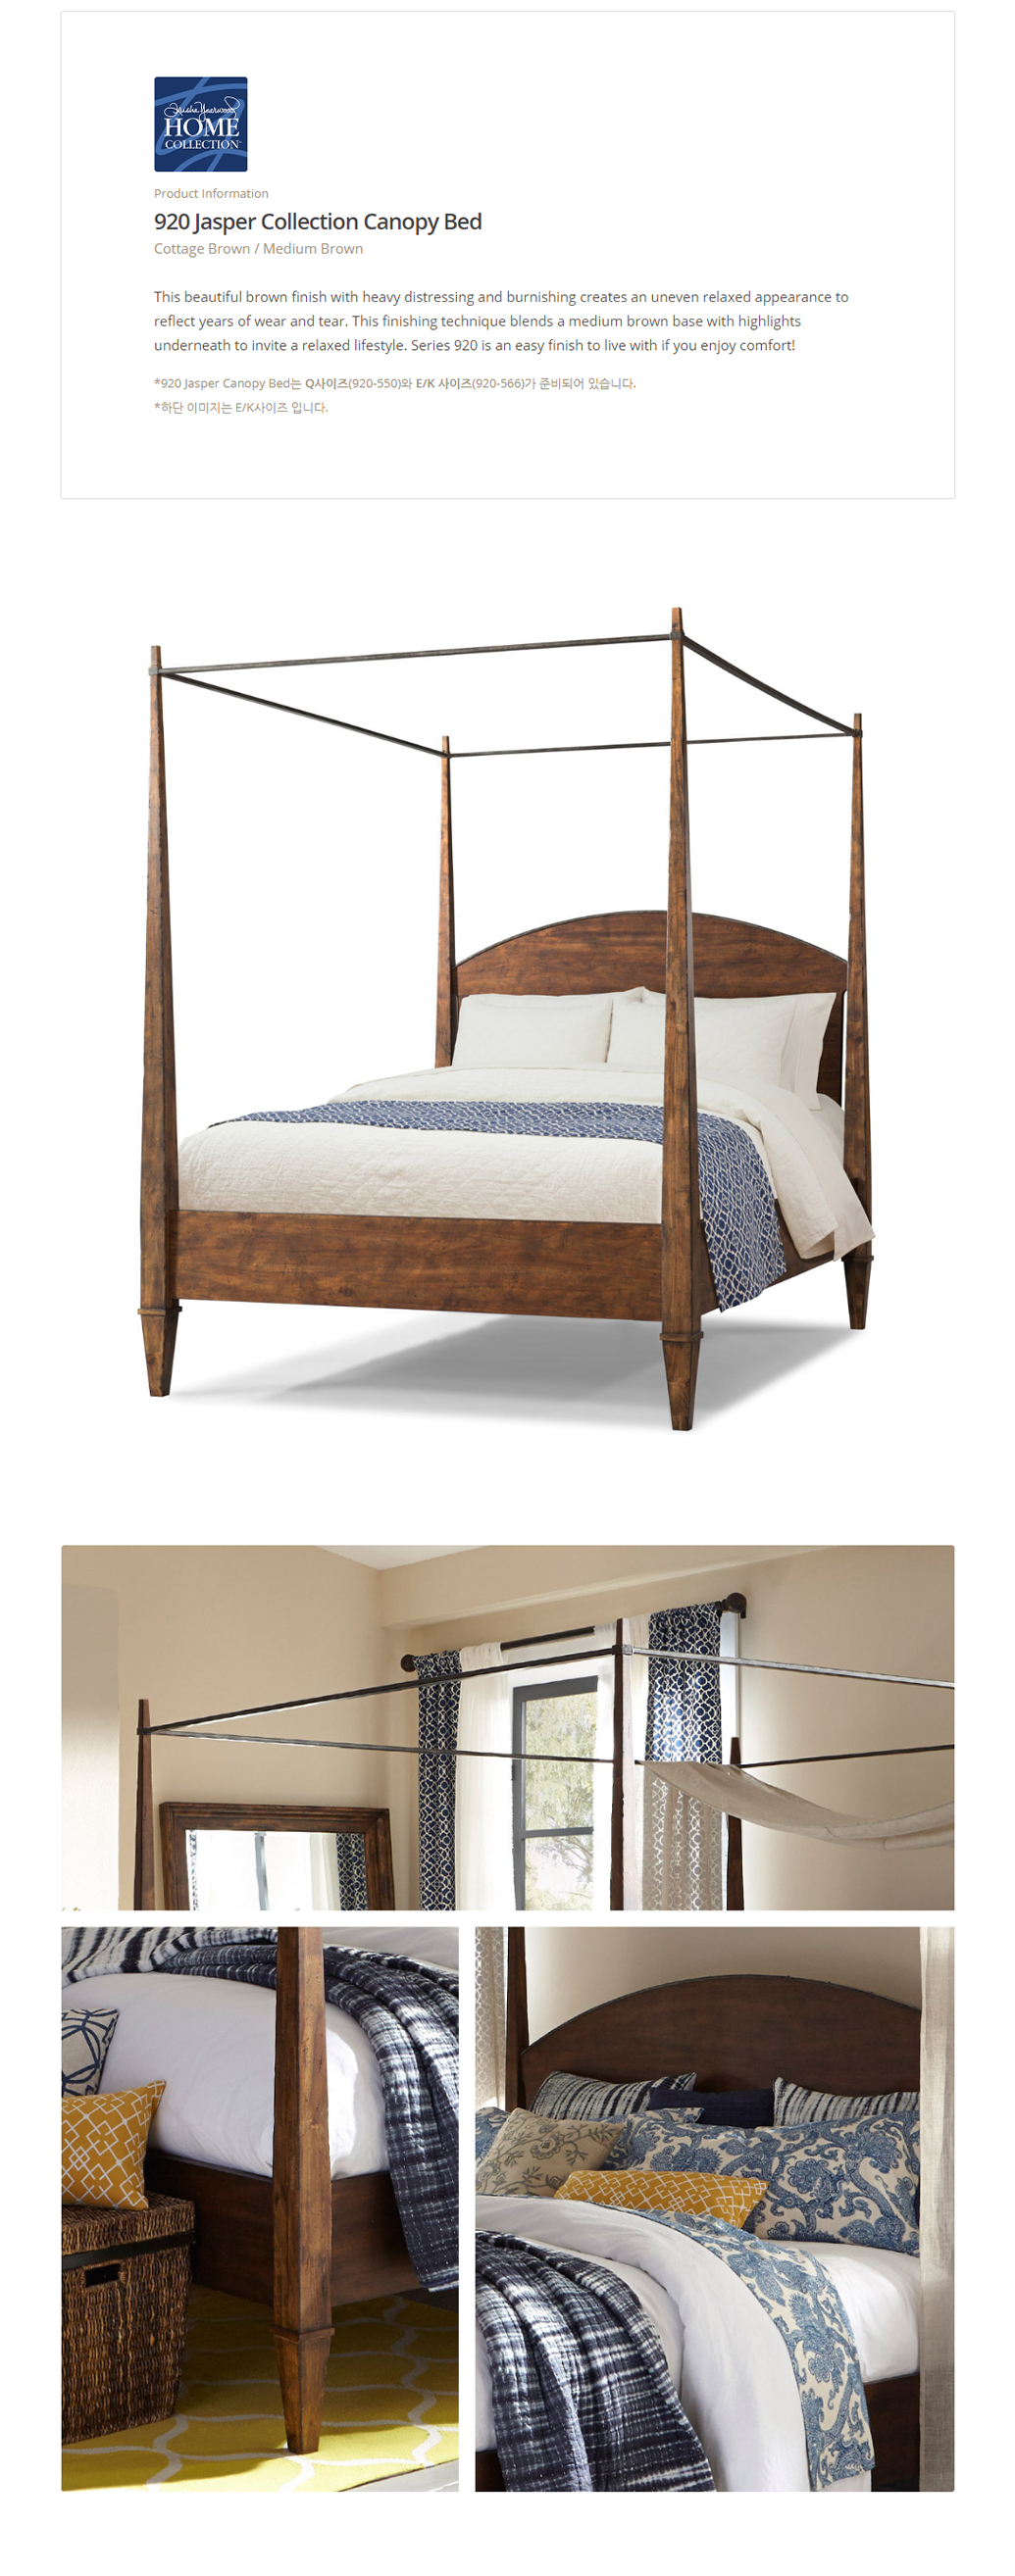 920-550_jasper_canopy_bedroom_02.jpg